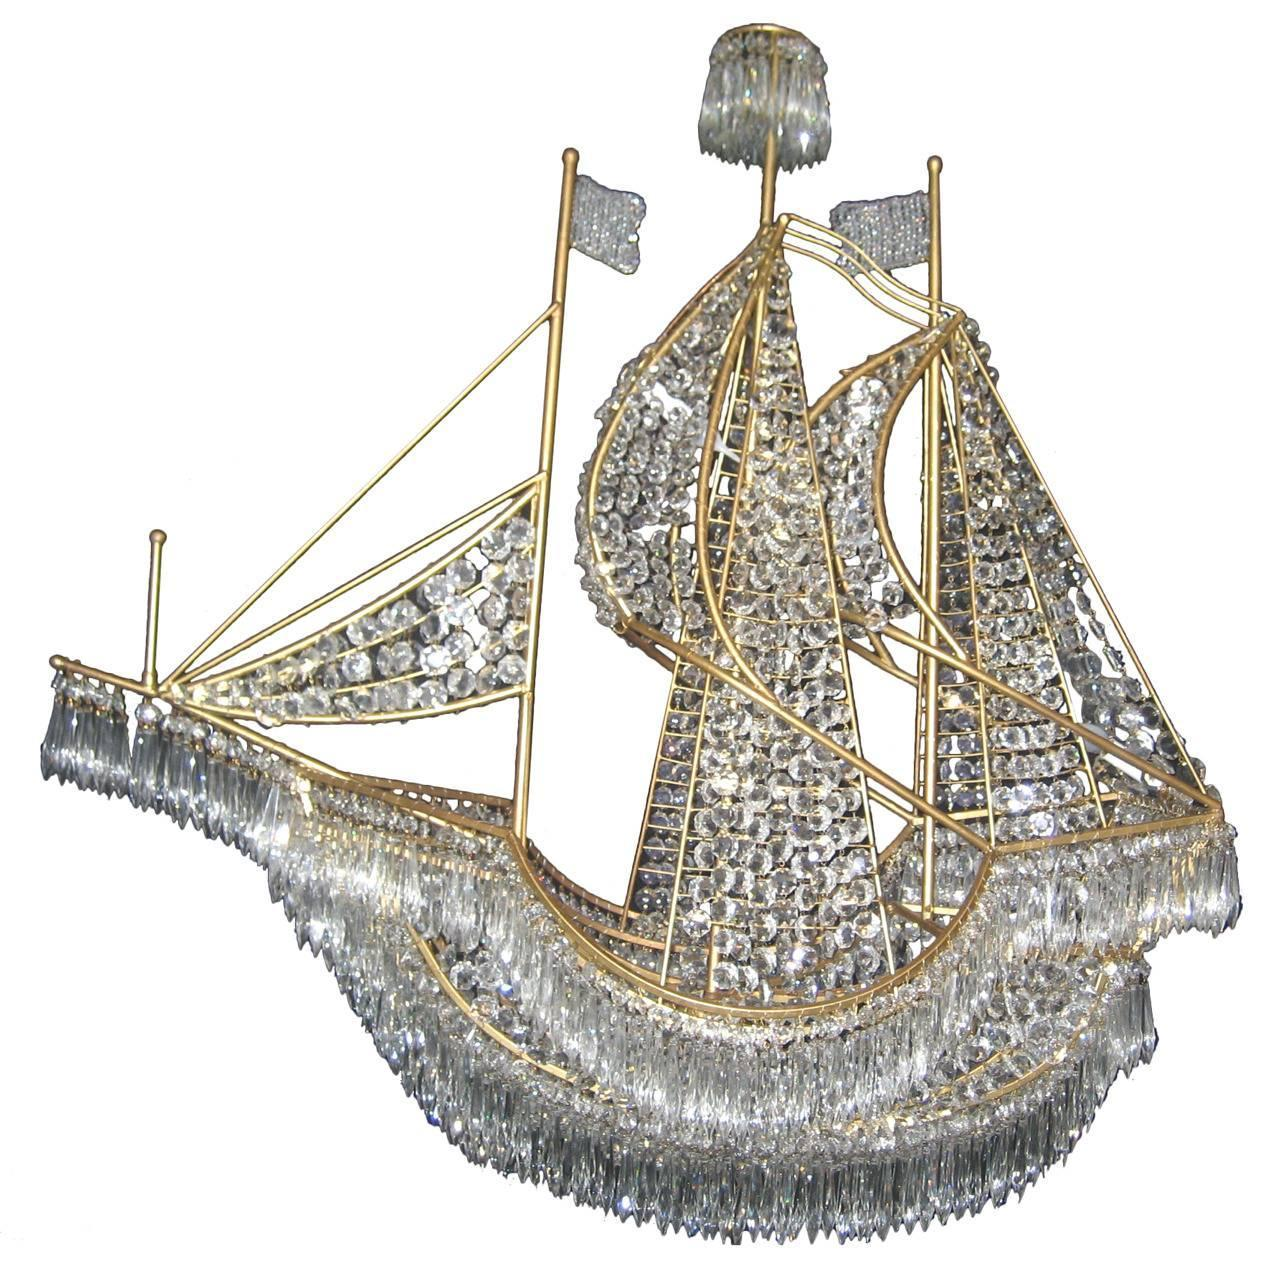 Boat chandelier campernel designs large italian gilt bronze and crystal boat chandelier at 1stdibs arubaitofo Choice Image